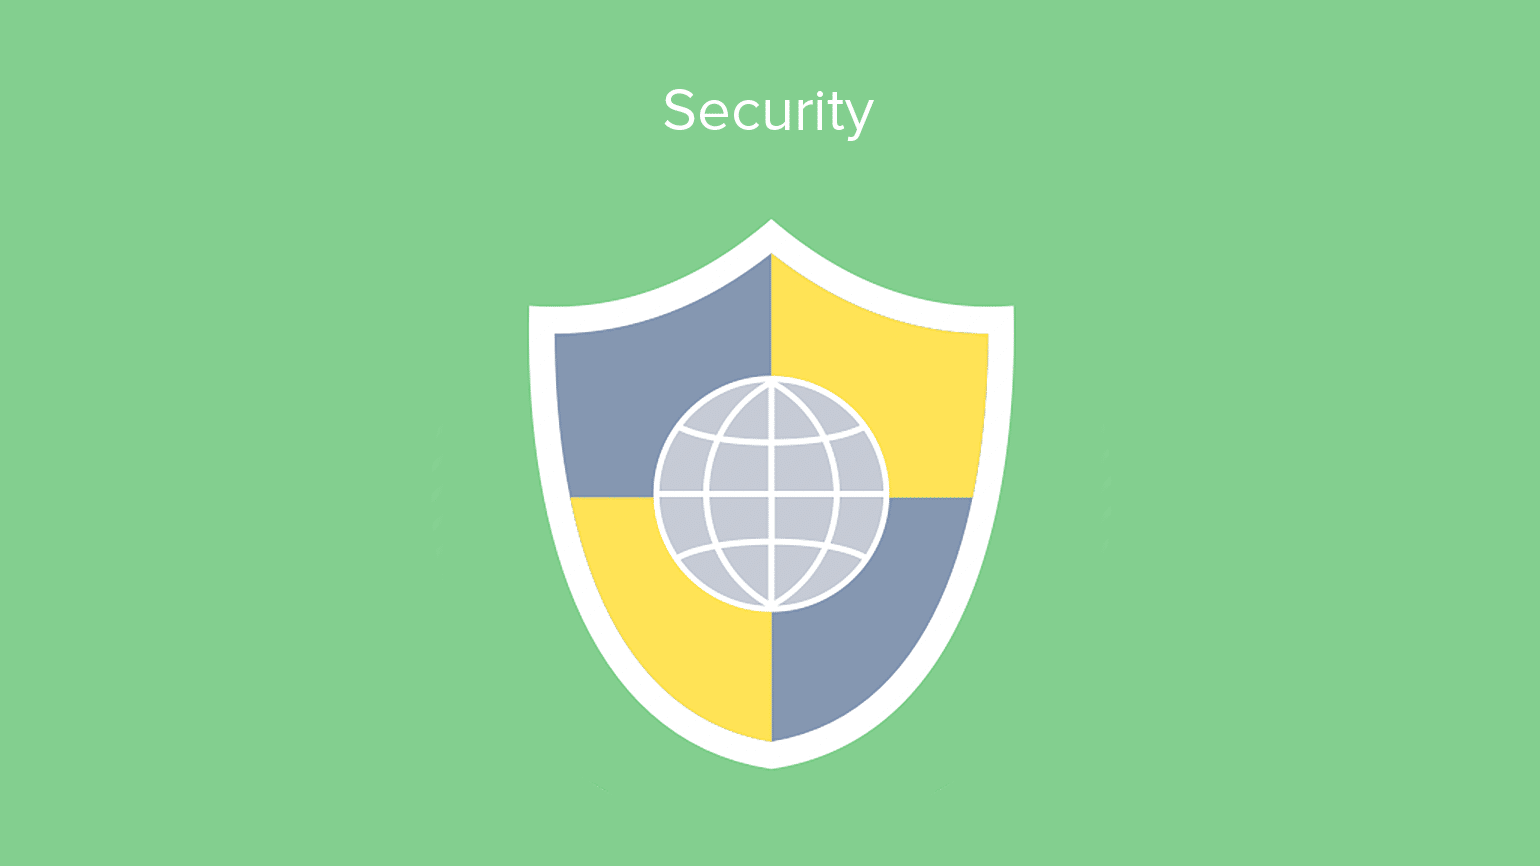 3security-1-ServerManagementCovers@2x